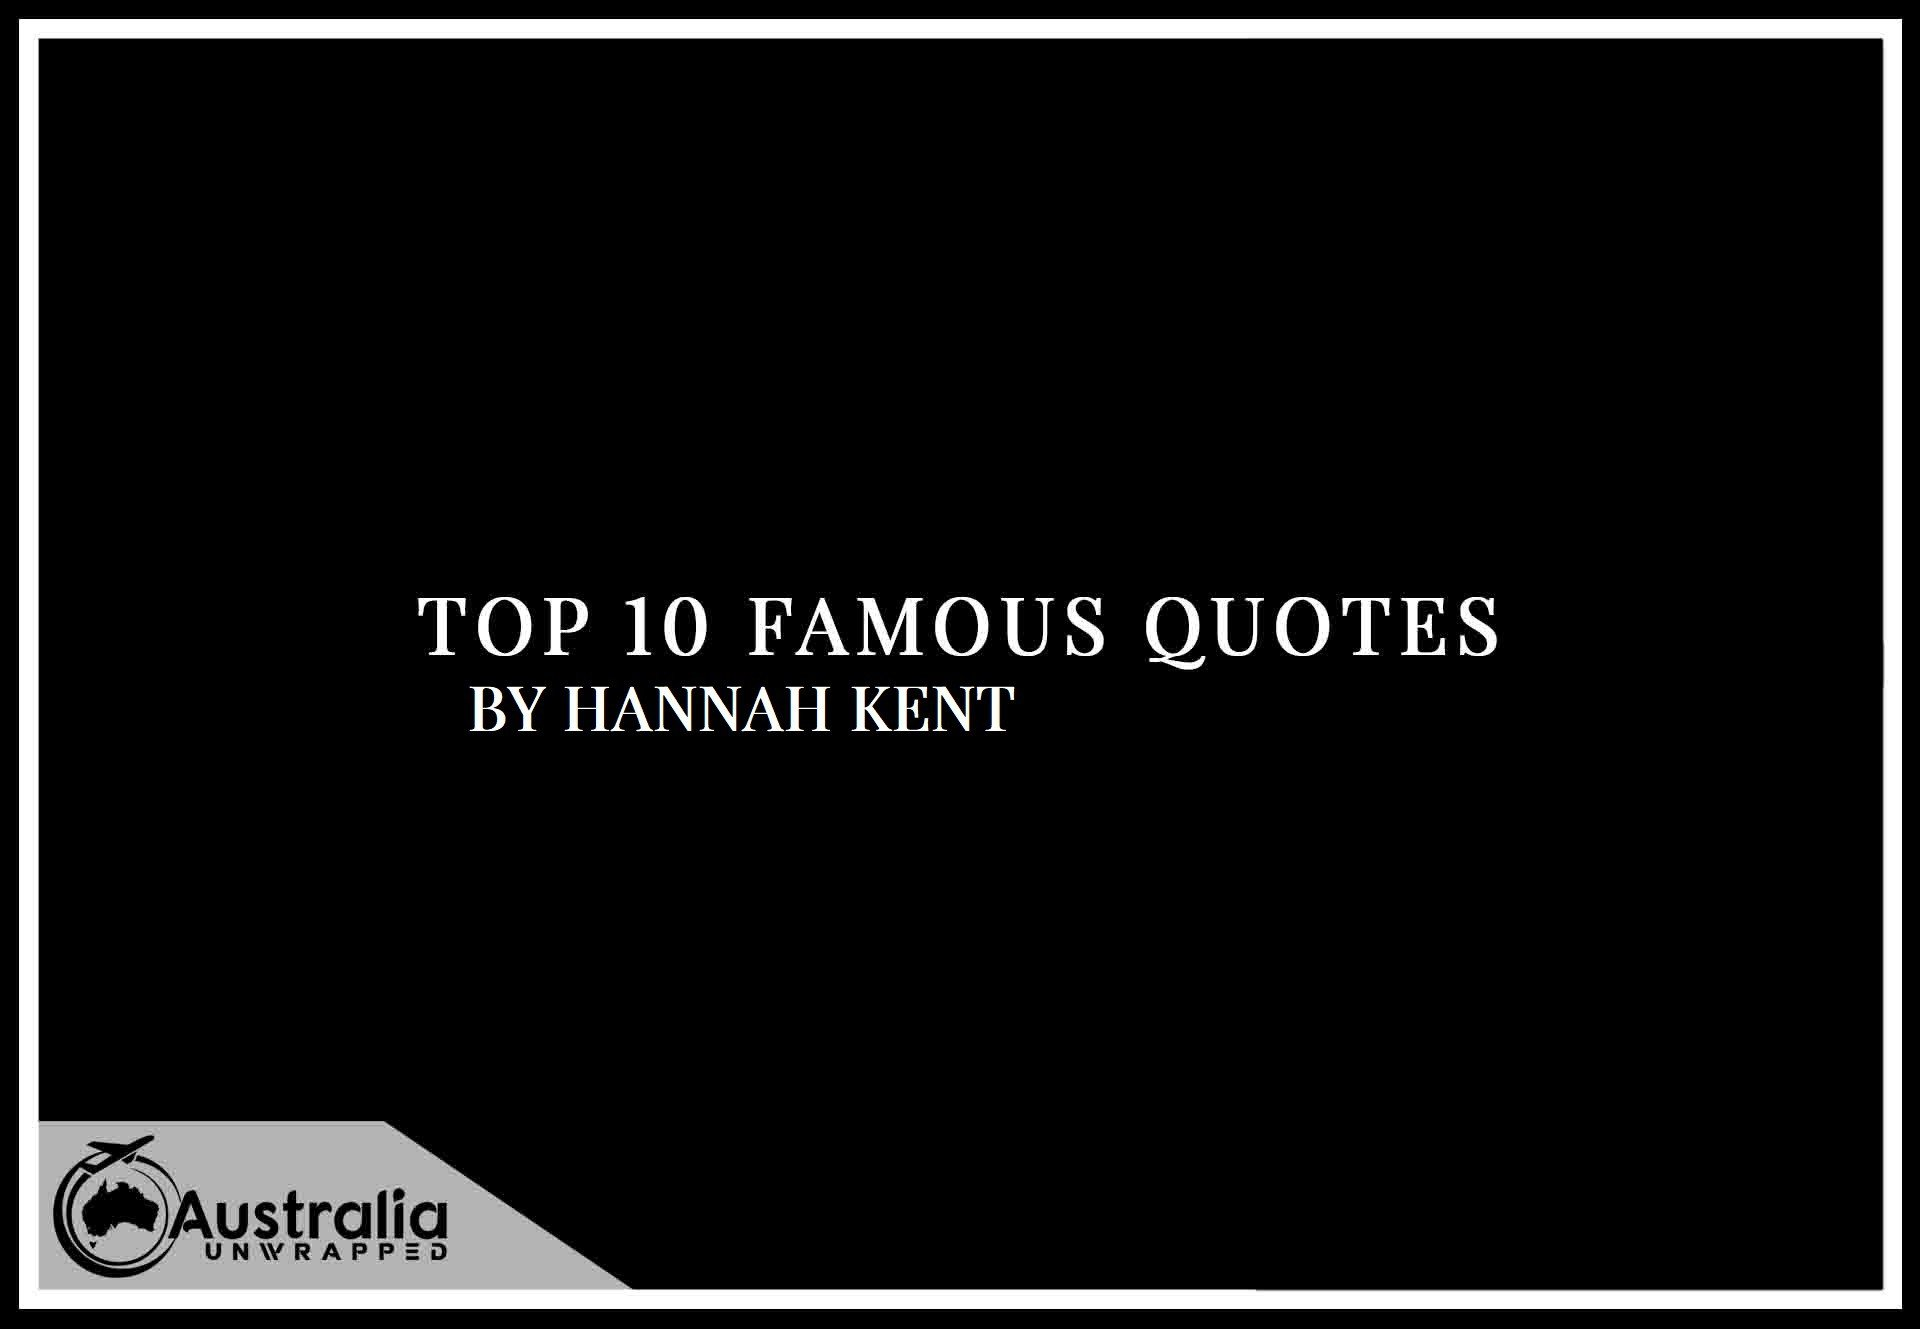 Top 10 Famous Quotes by Author Hannah Kent